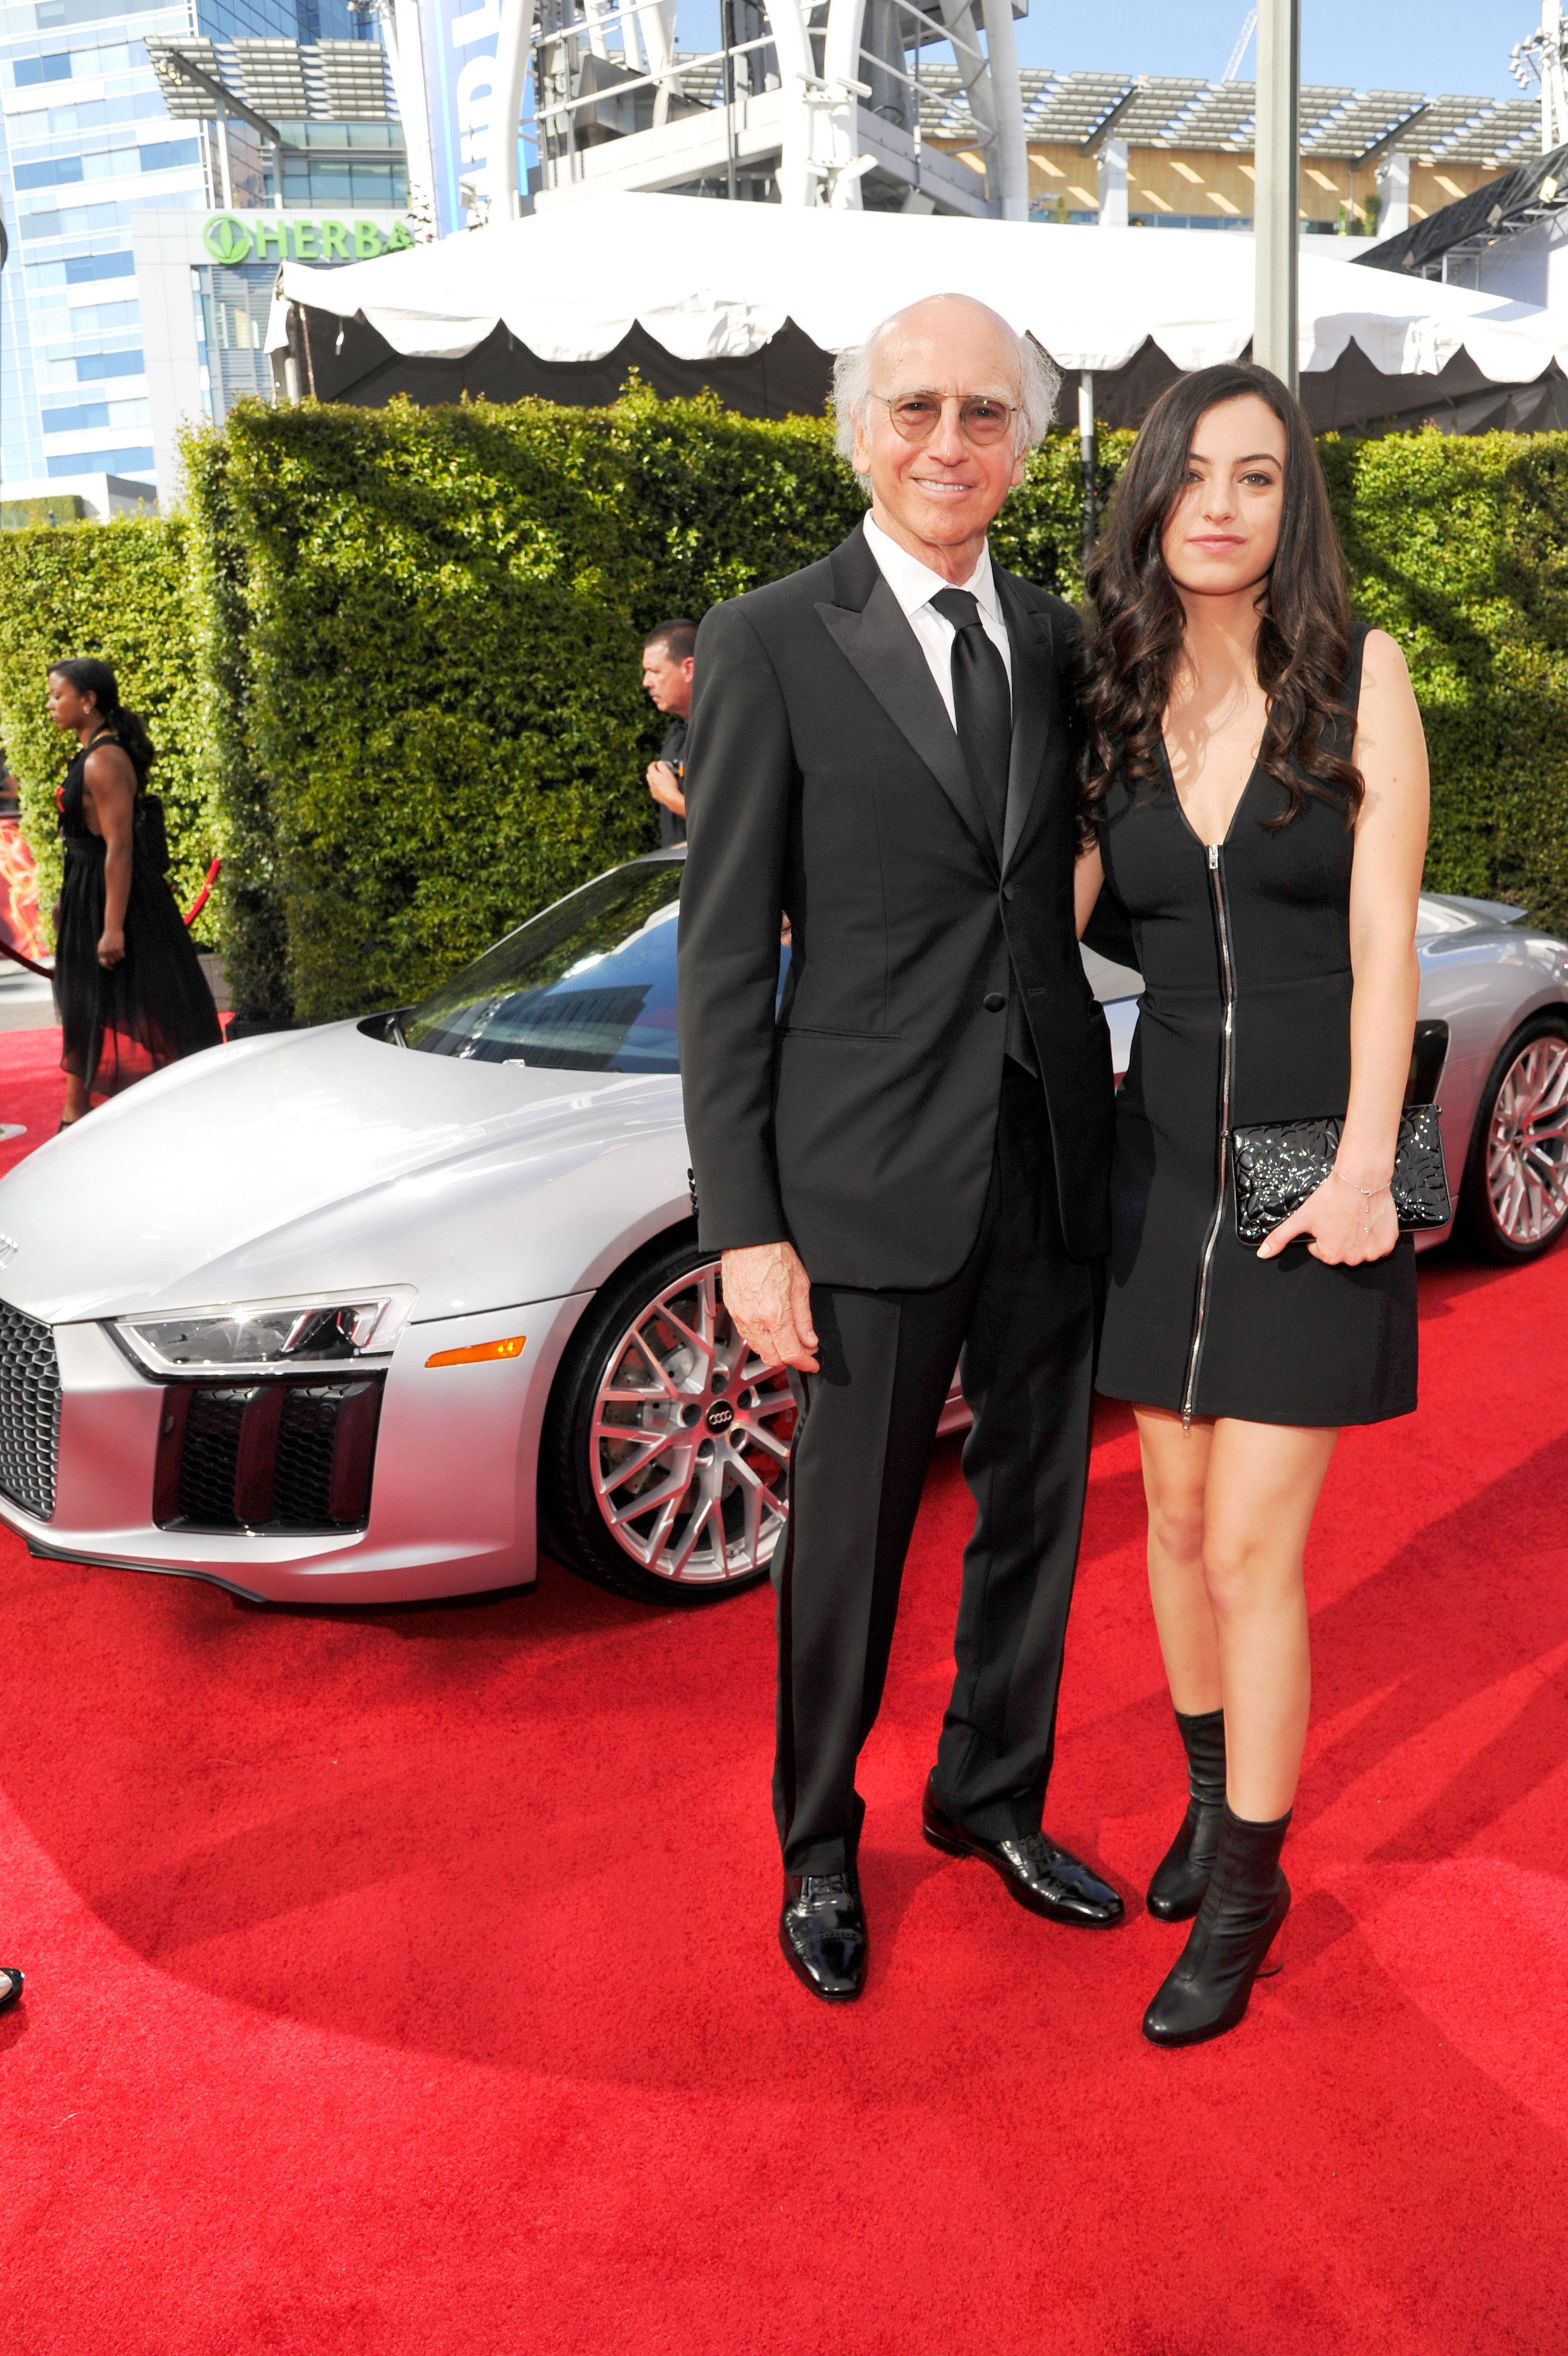 LOS ANGELES, CA - SEPTEMBER 18:  Actor Larry David (L), Cazzie David and Audi at The 68th Emmy Awards on September 18, 2016 in Los Angeles, California.  (Photo by John Sciulli/Getty Images for Audi)